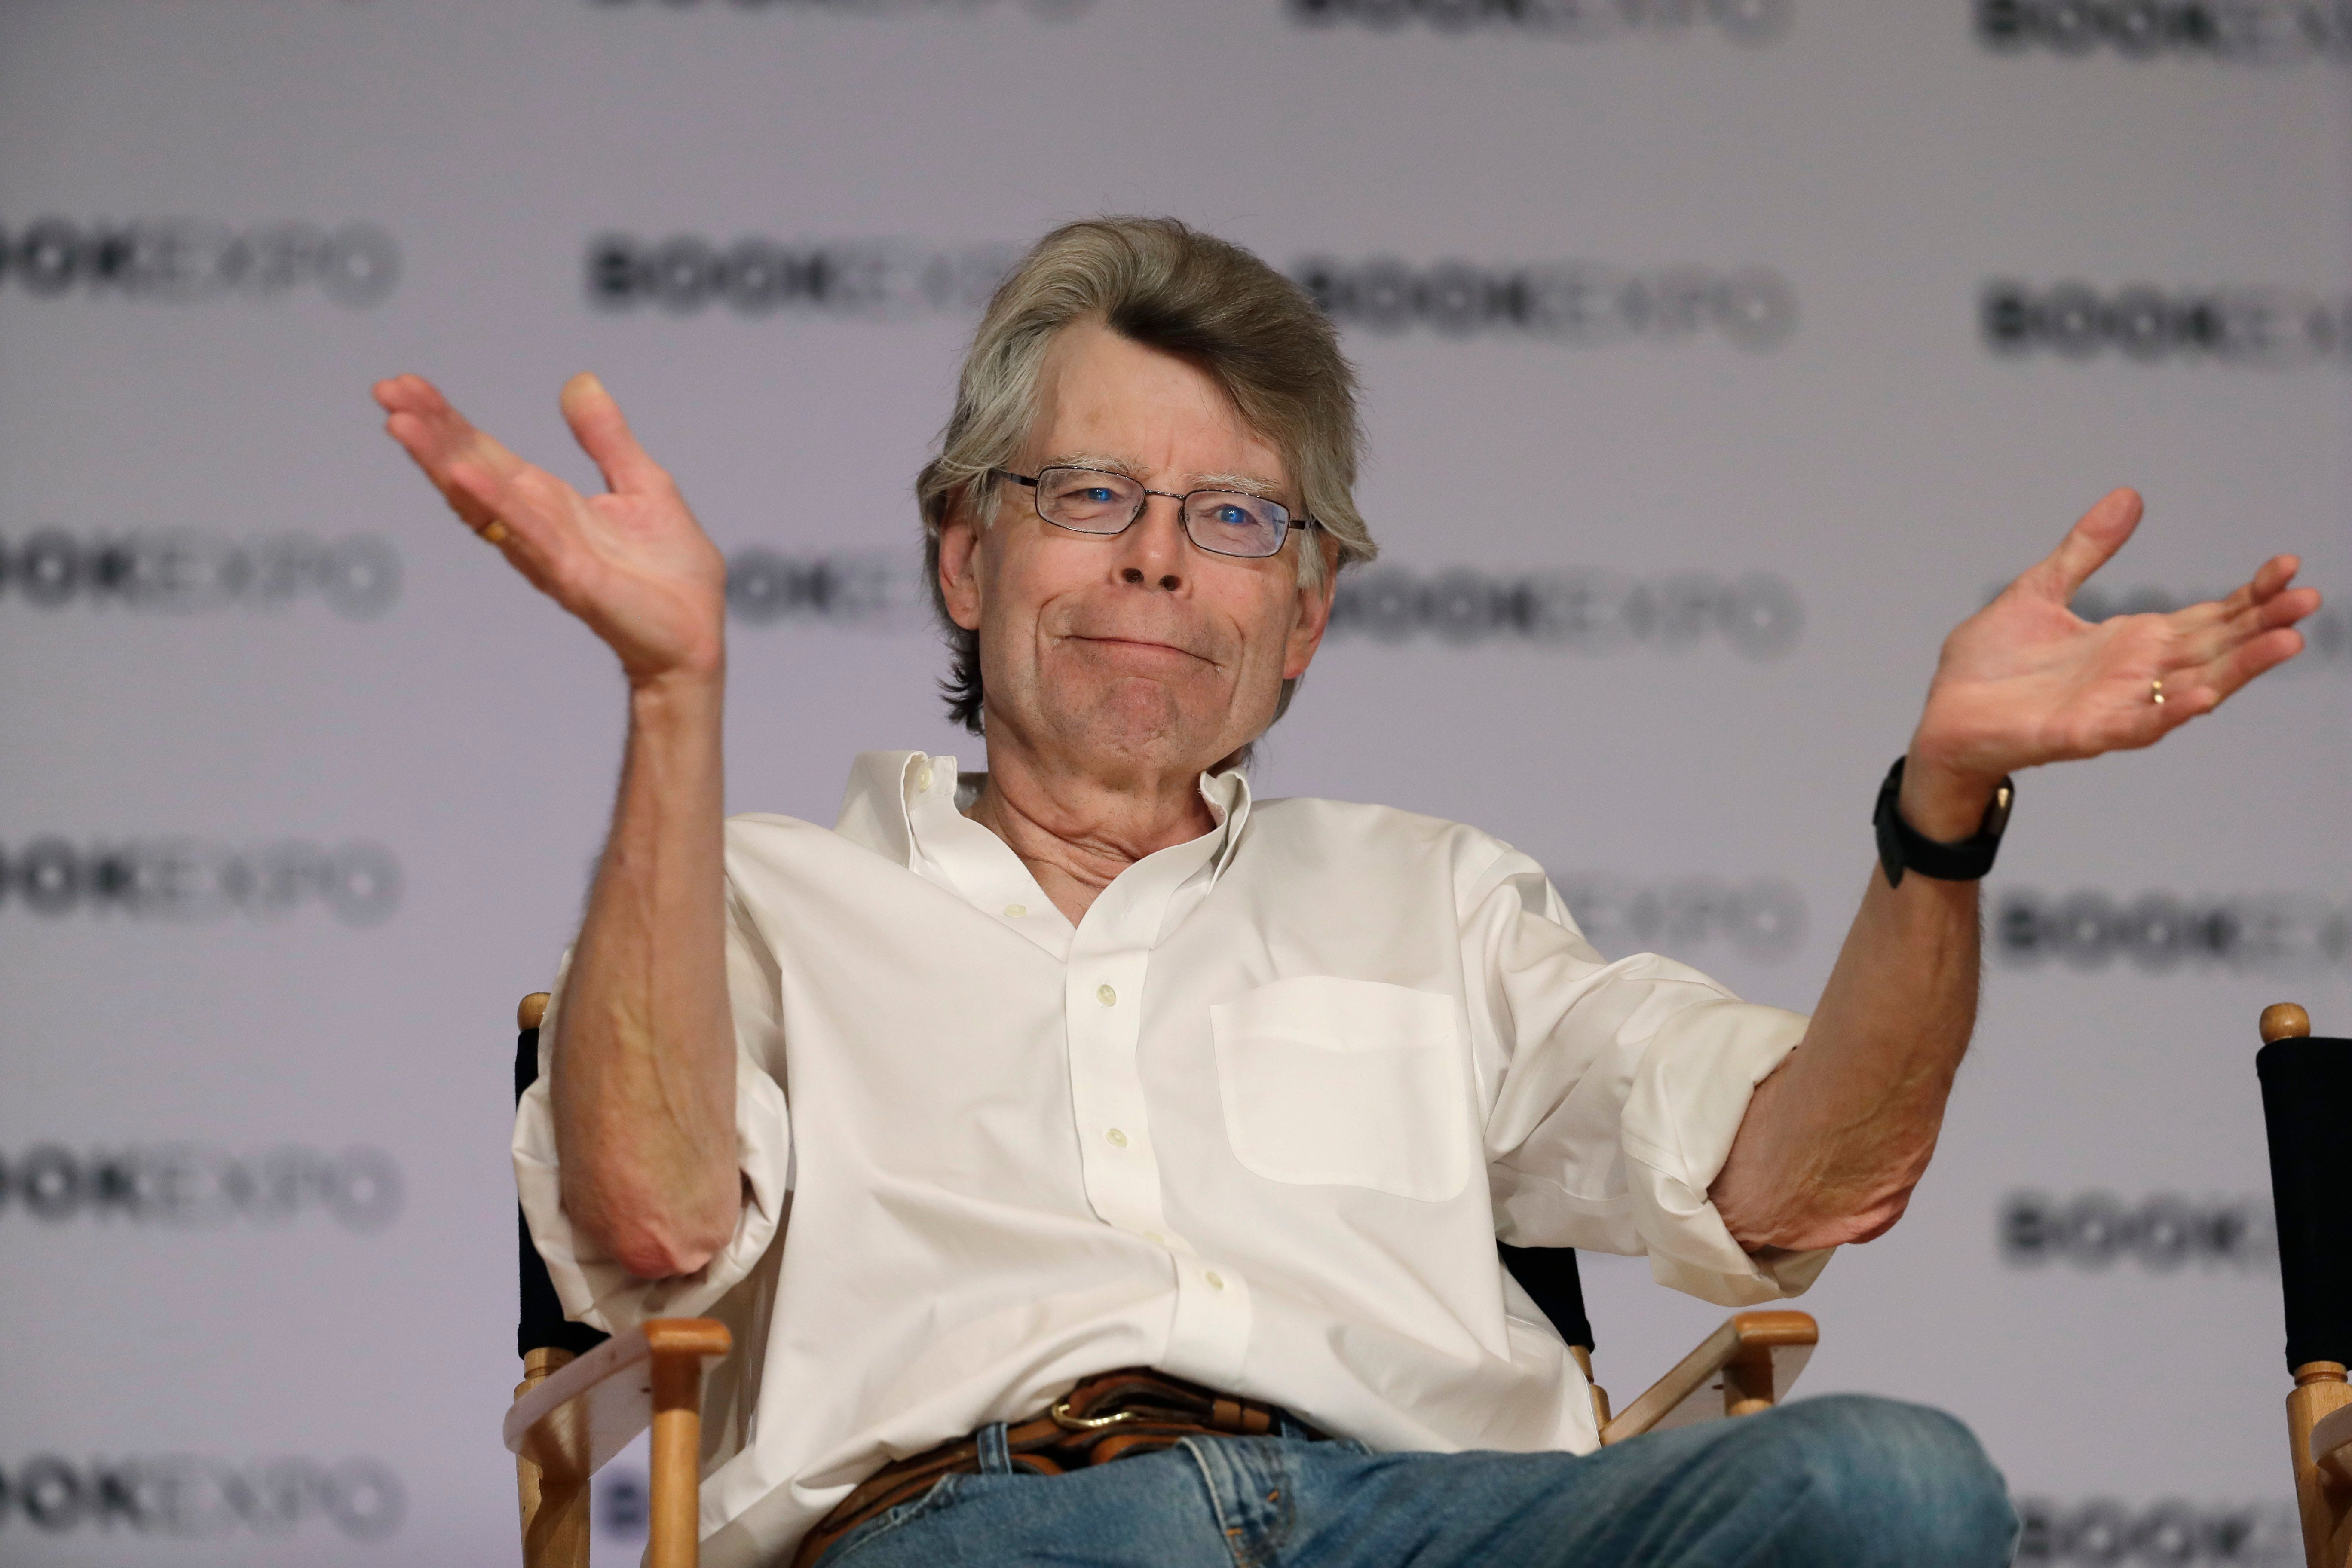 Author Stephen King speaks at Book Expo America, Thursday, June 1, 2017, in New York. King and his son, Owen, have co-written a novel, Sleeping Beauties, to be published in September. (AP Photo/Mark Lennihan)